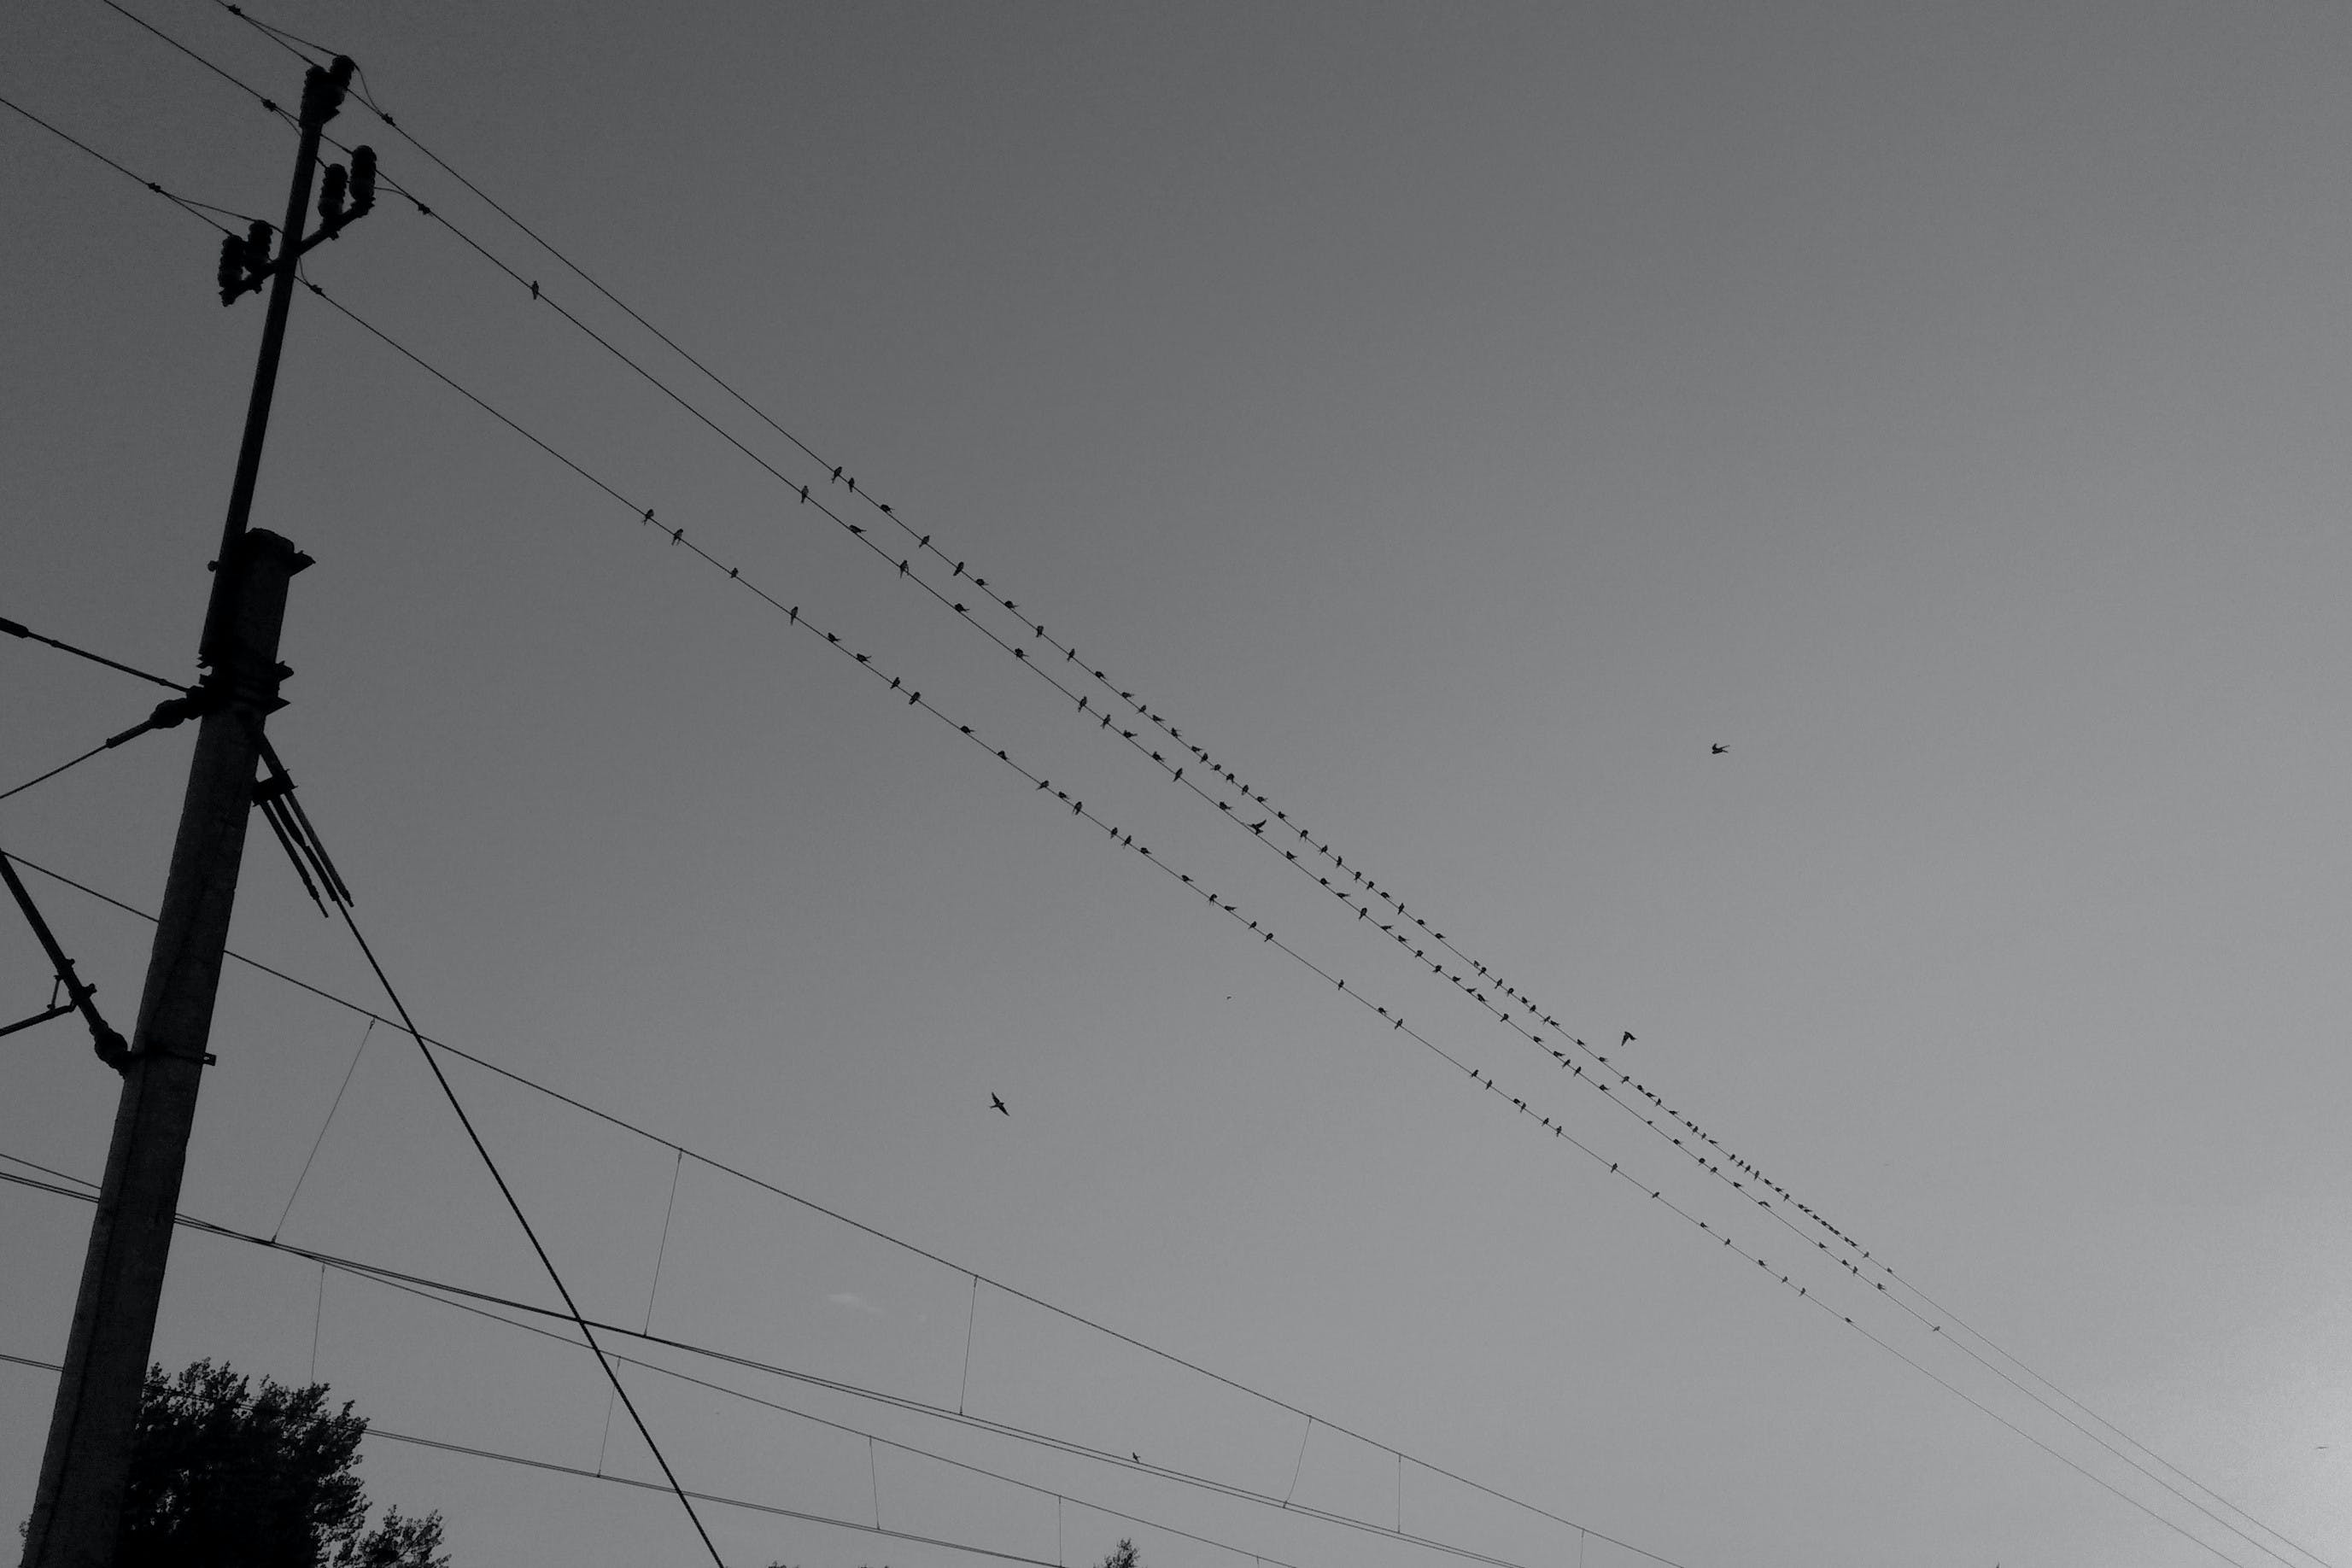 Free stock photo of birds, cables